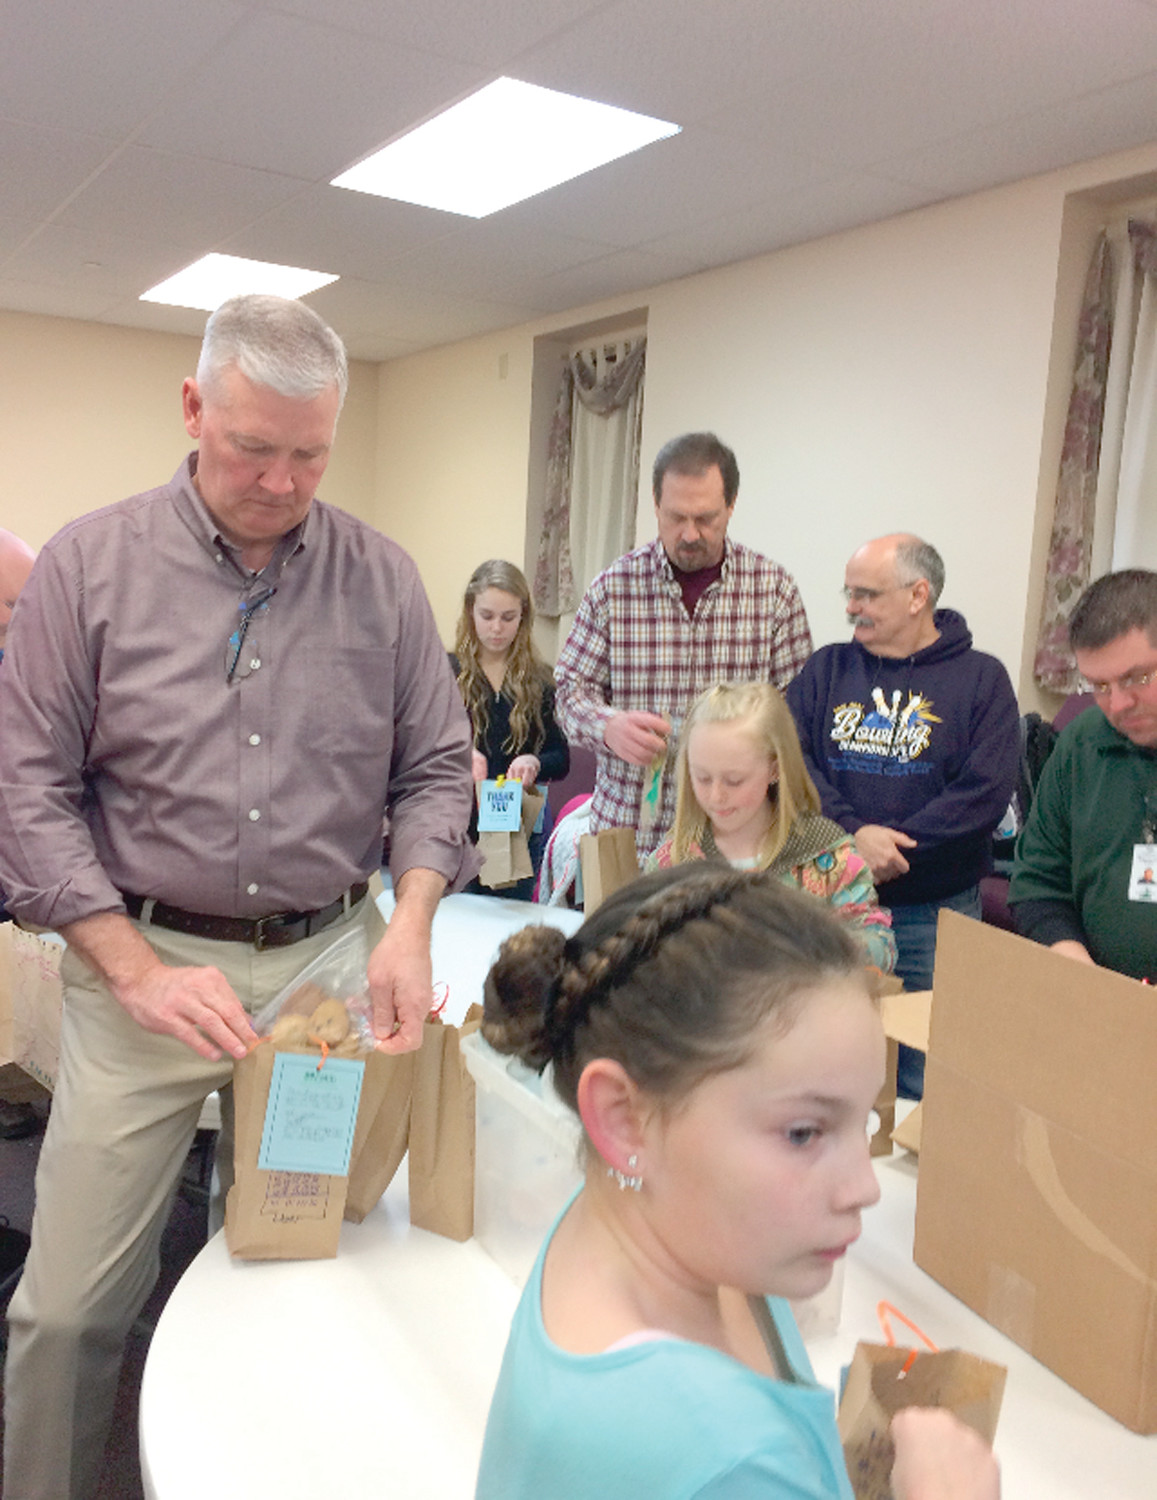 HELPING HIS OWN CAUSE: Police Captain Michael Higgins helps put the cookies into bags during the potluck dinner event at the church Saturday night, which would later be delivered to the police department on Tuesday afternoon.